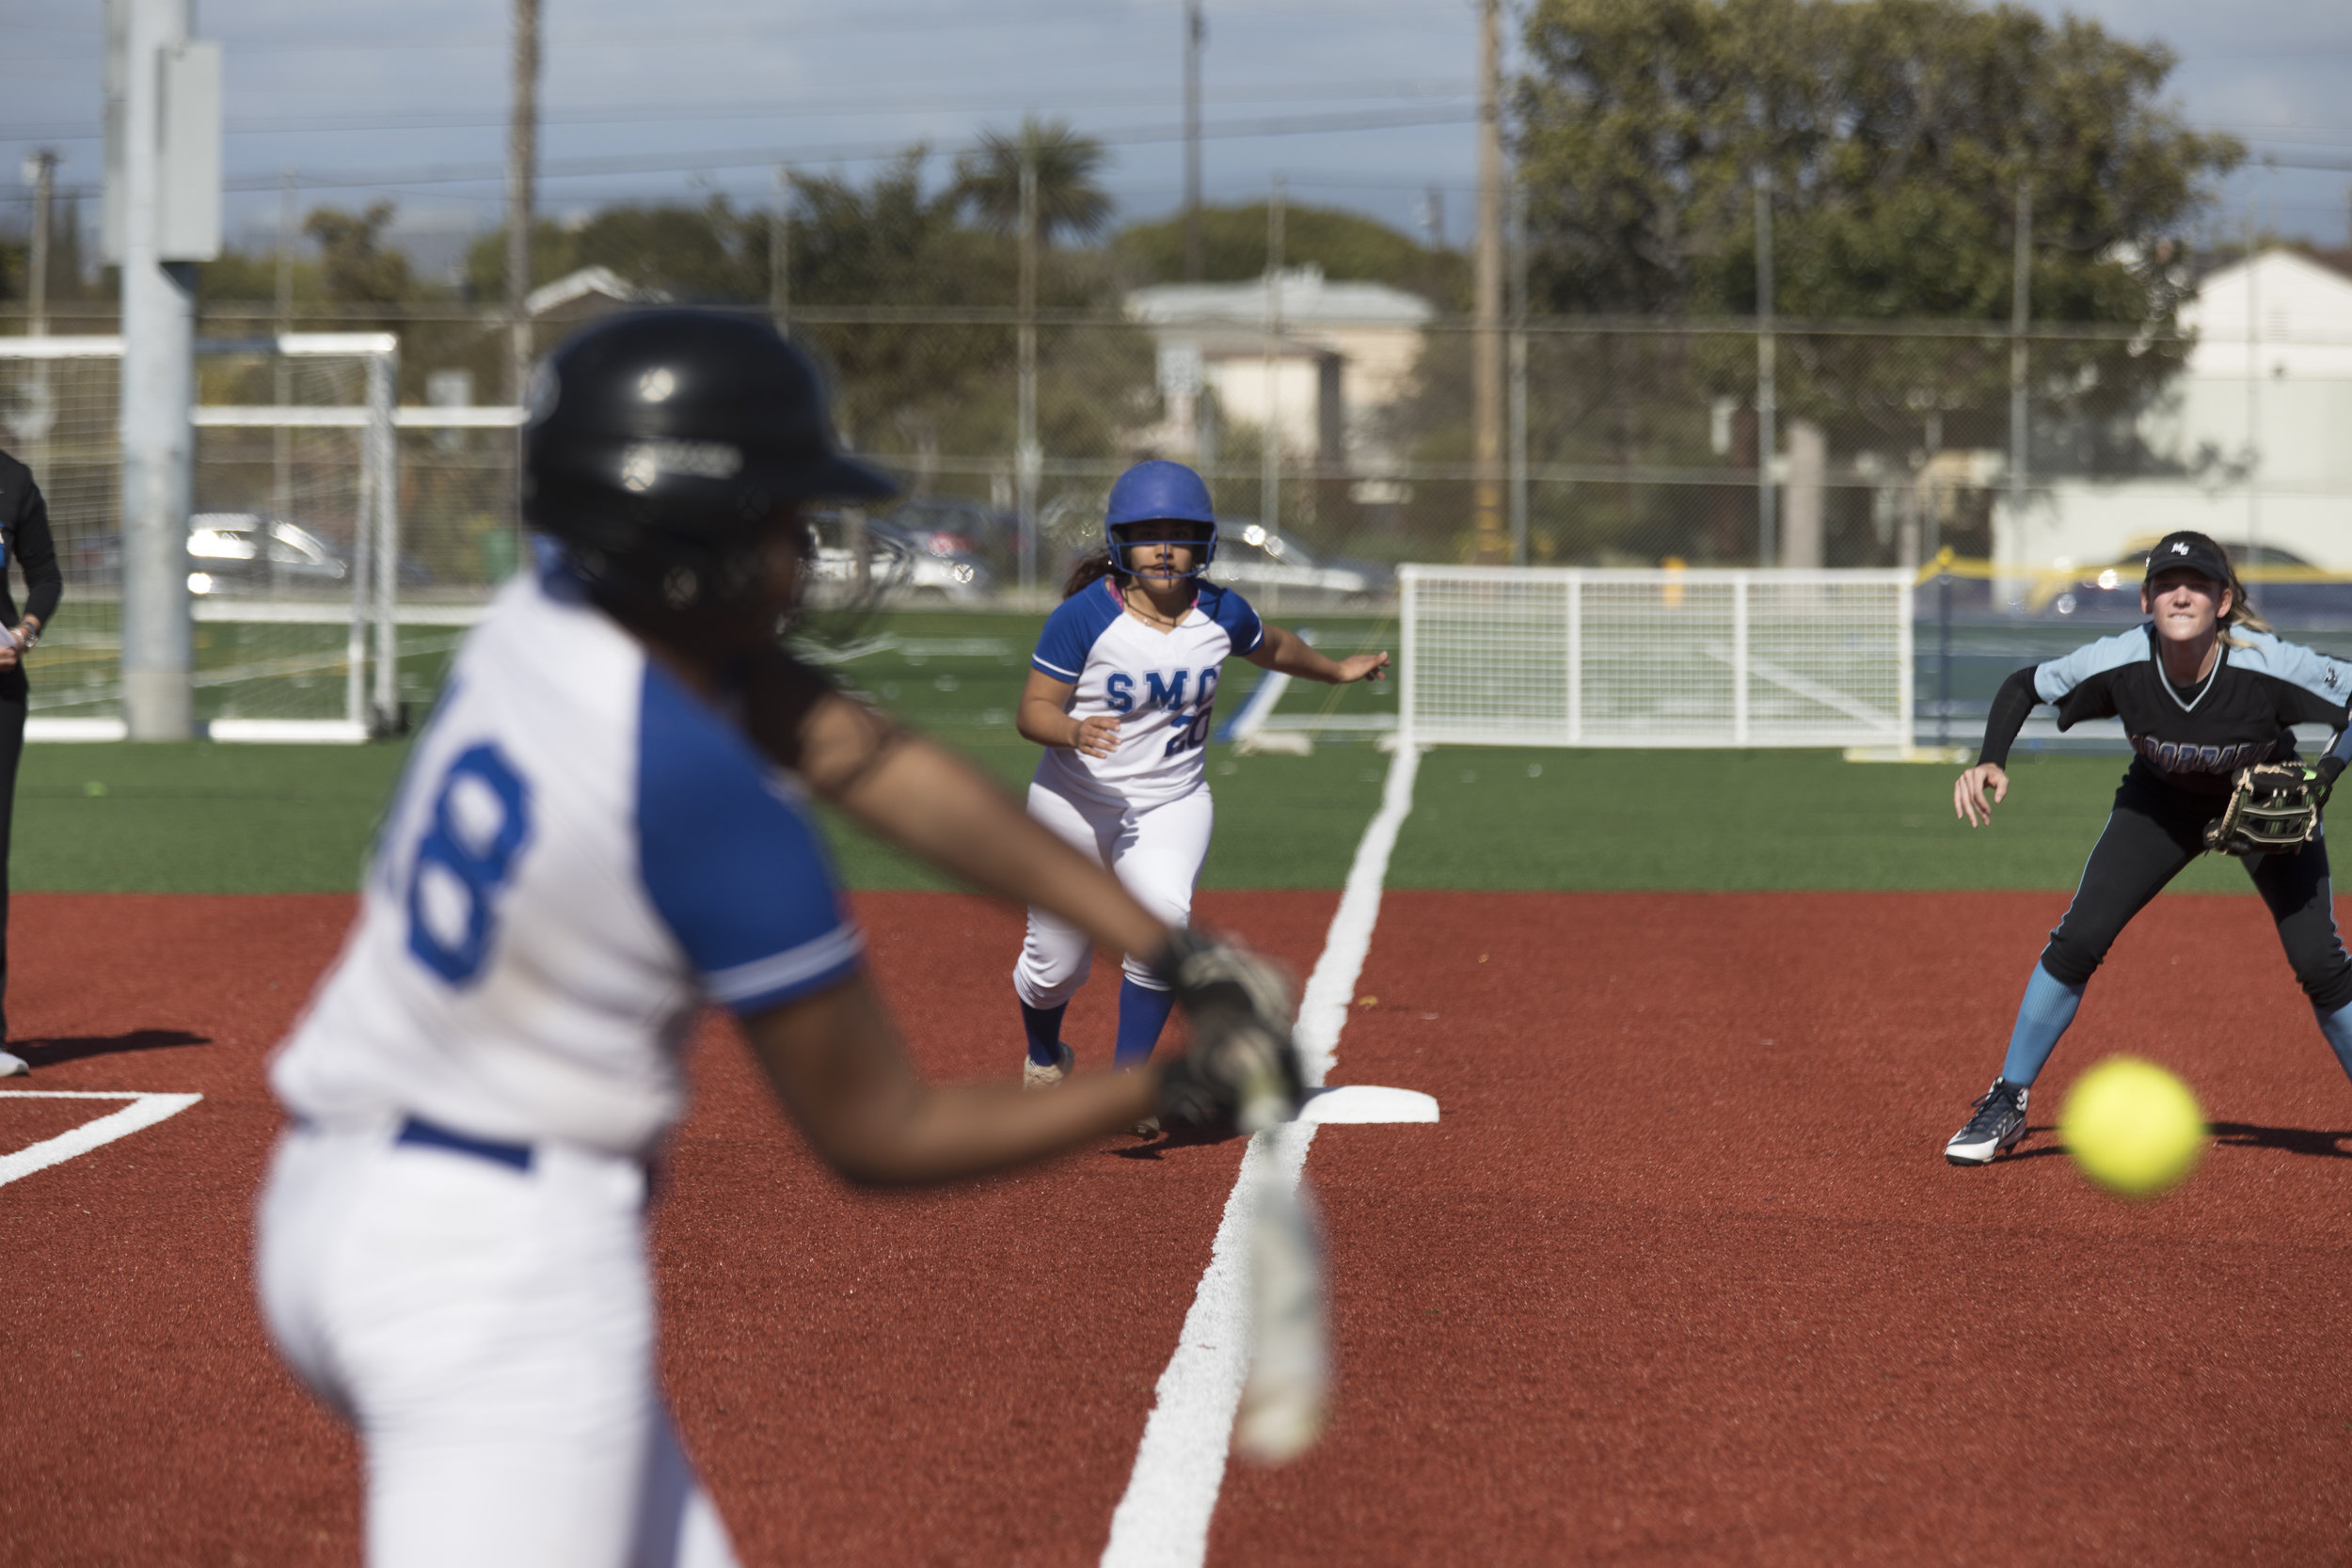 Batter Jasmine Loftin and Nikki Valdez from Santa Monica Corsairs playing the Moorpark College Raiders at Santa Monica College on Thursday March 7, 2019. Final score 9-5 for the Corsairs. Photo by Tanya Barcessat